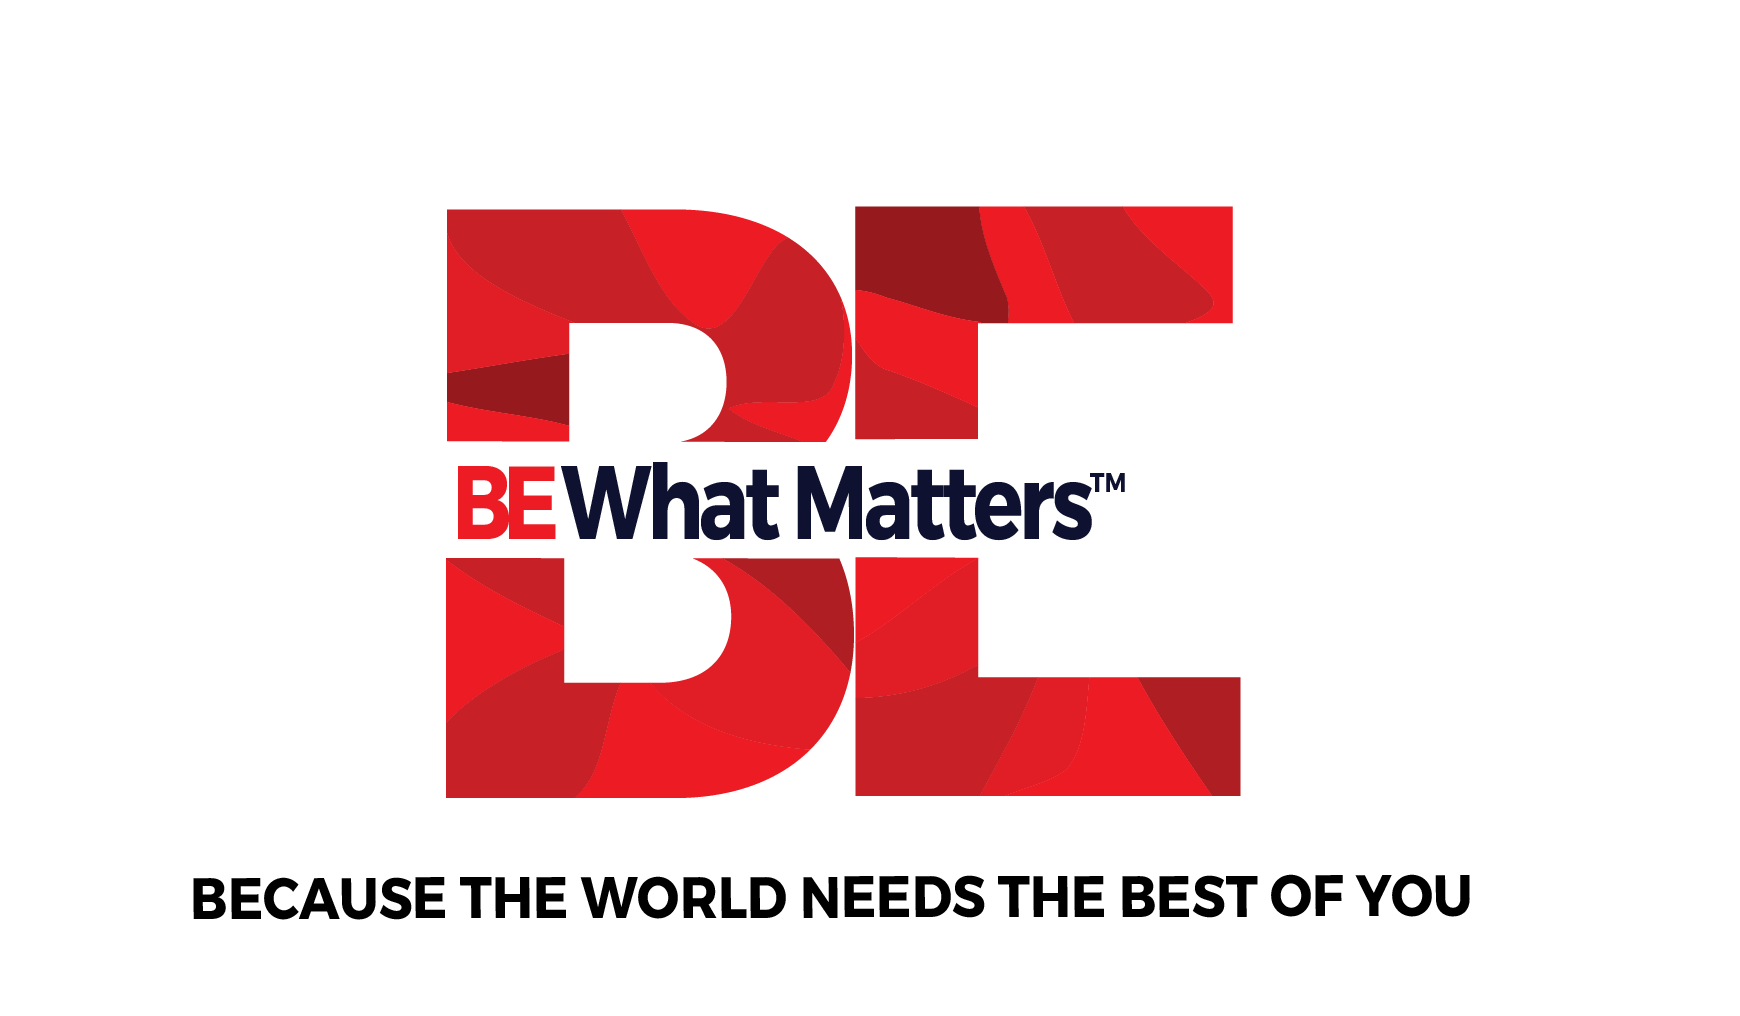 BE What Matters™ | A Social Purpose Co. & Community for Leaders and ChangeMakers